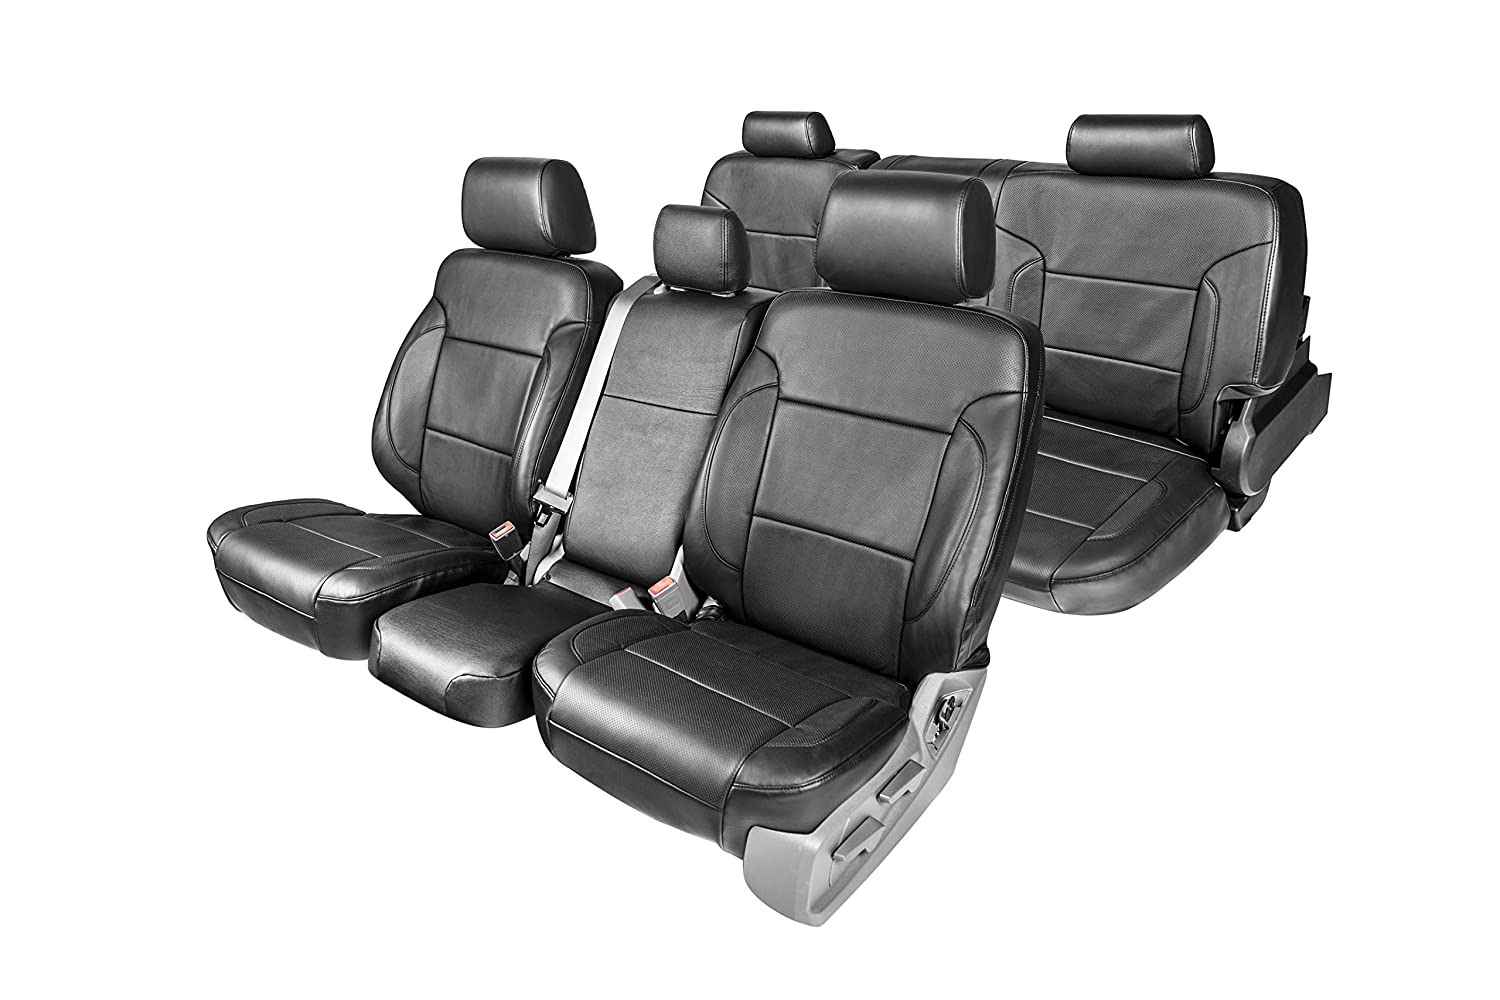 Clazzio 721712blk Black Leather Front and Rear Row Seat Cover for Ford F250//F350//F450 Crew Cab